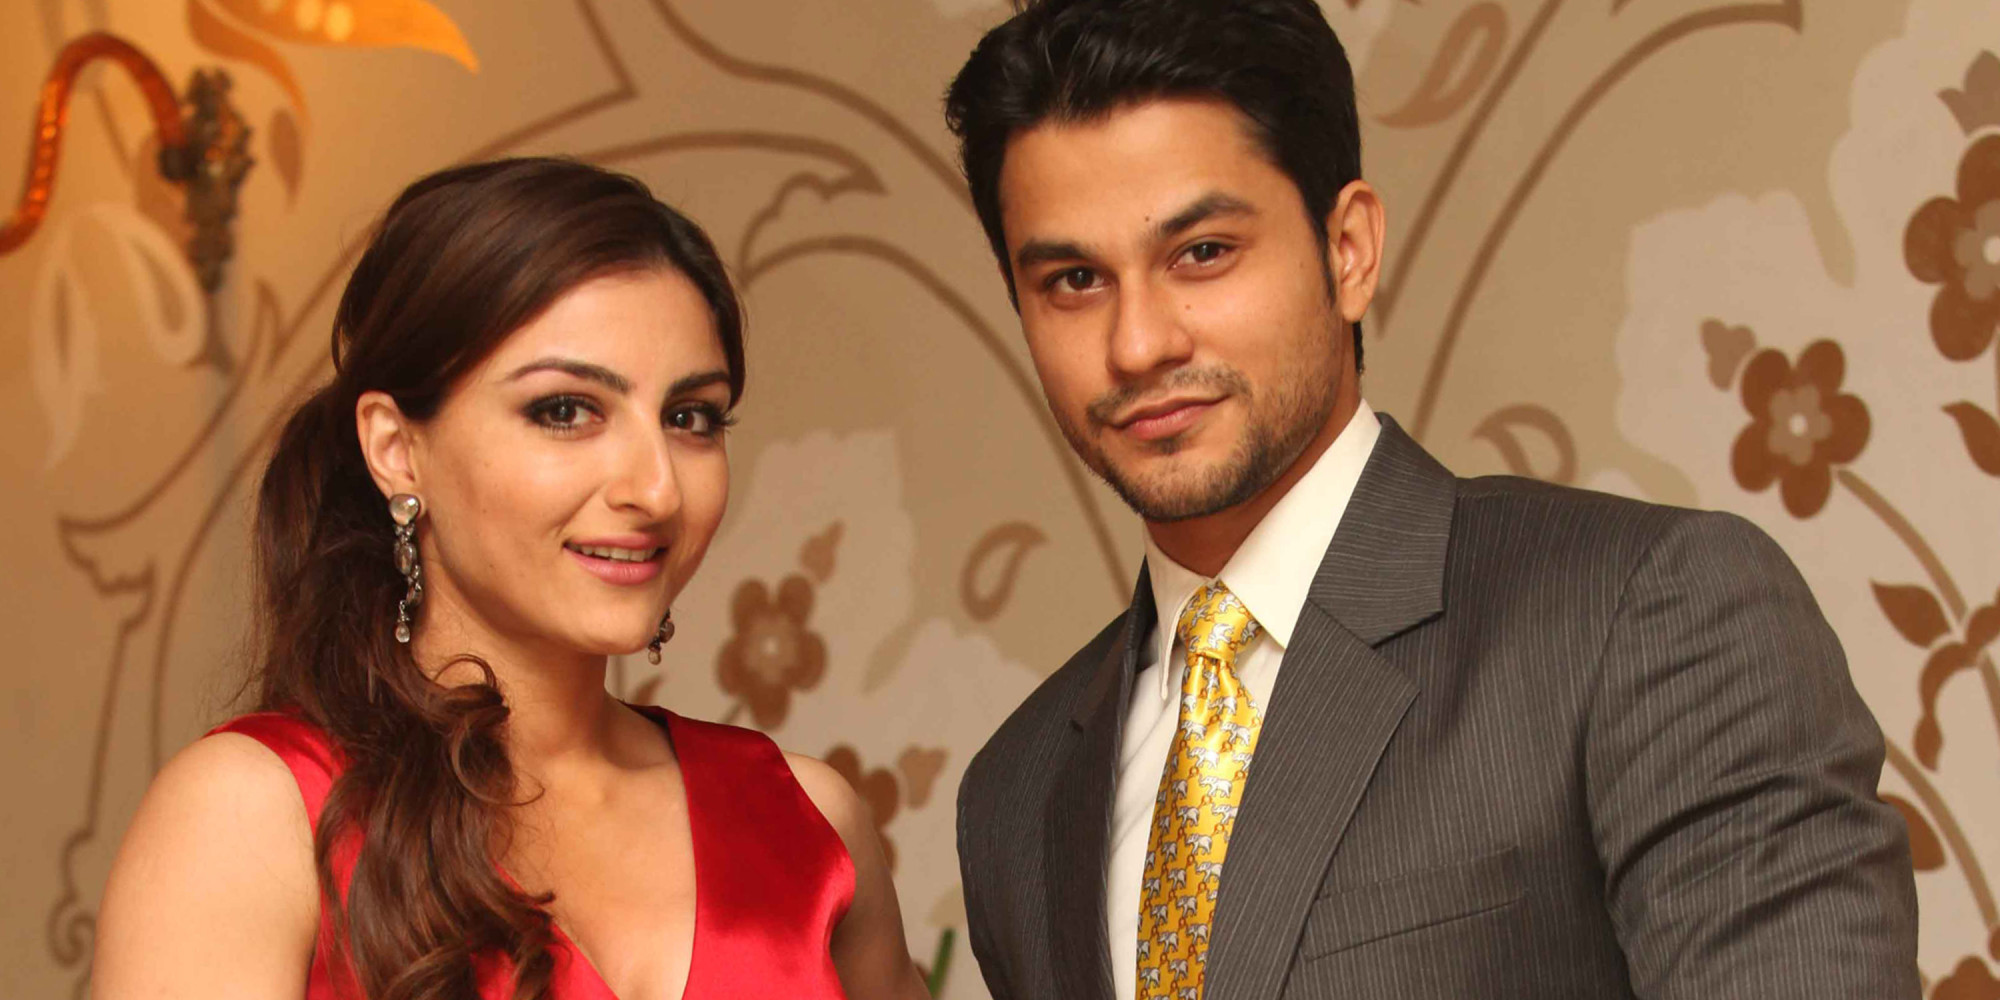 NEW DELHI, INDIA - NOVEMBER 7: Actor Soha Ali Khan with her boy friend Kunal Khemu during profile shoot for HT City on November 7, 2012 in New Delhi, India. (Photo by Manoj Verma/Hindustan Times via Getty Images)